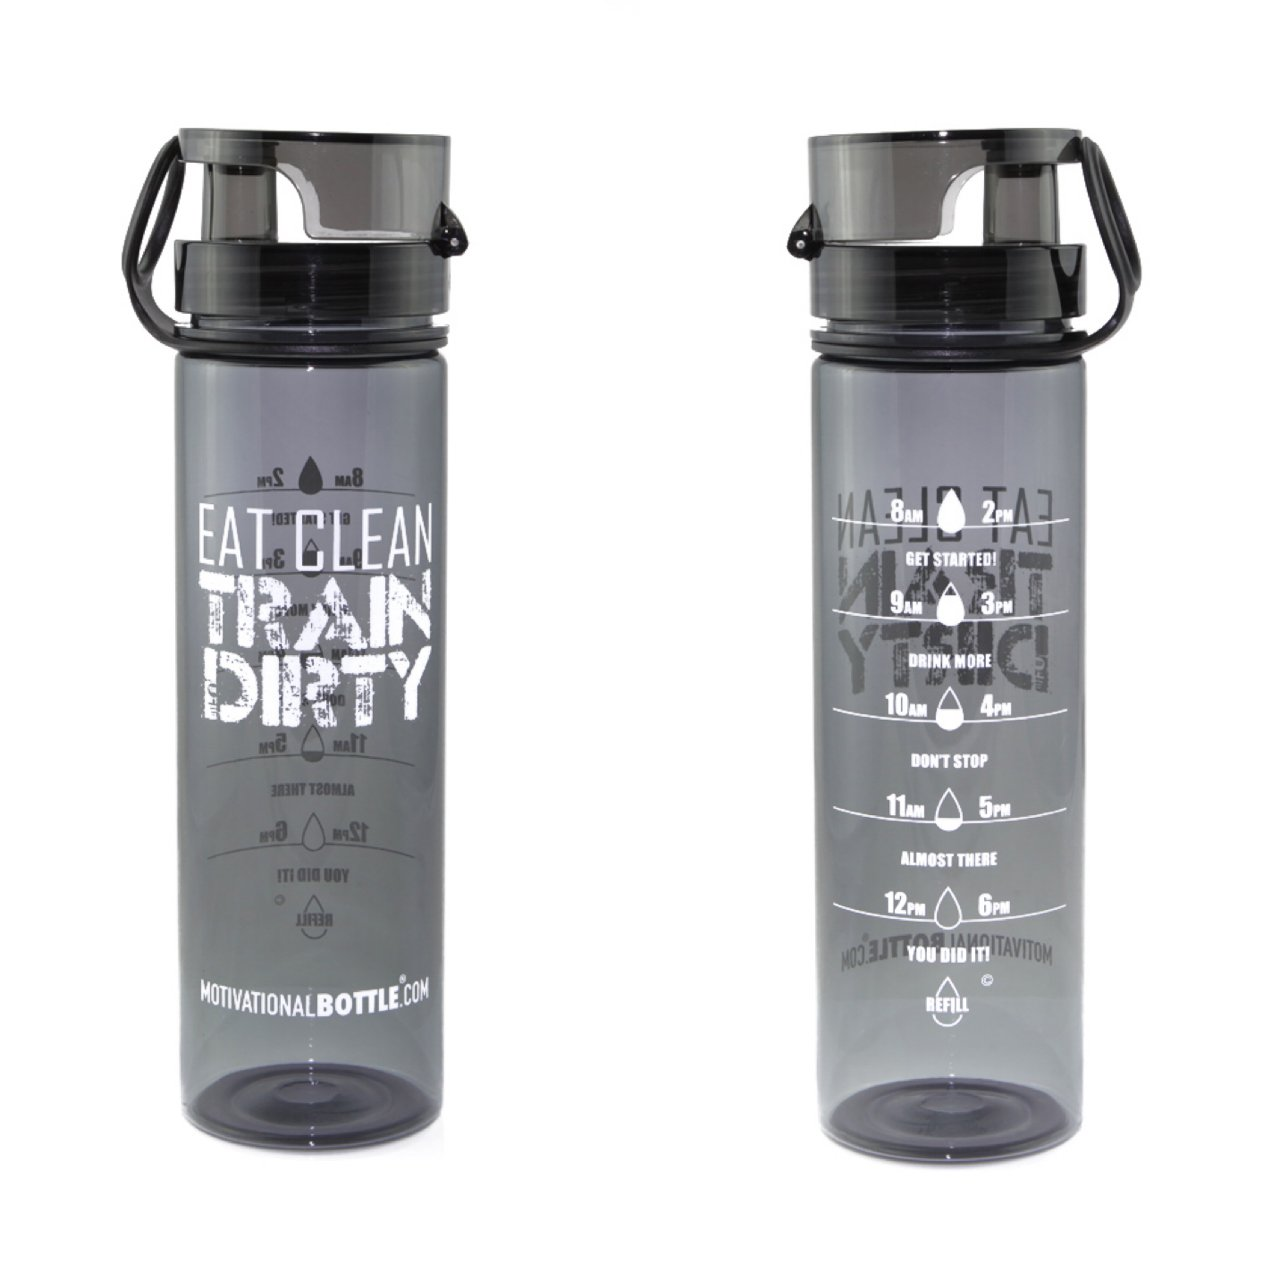 Goal Marked Times for Measuring Your Daily Water Intake 27oz Flip Lid Water Bottle Fitness -Workout-Sports Bottle BPA Free Non-Toxic Triton Measurements Motivational Bottle